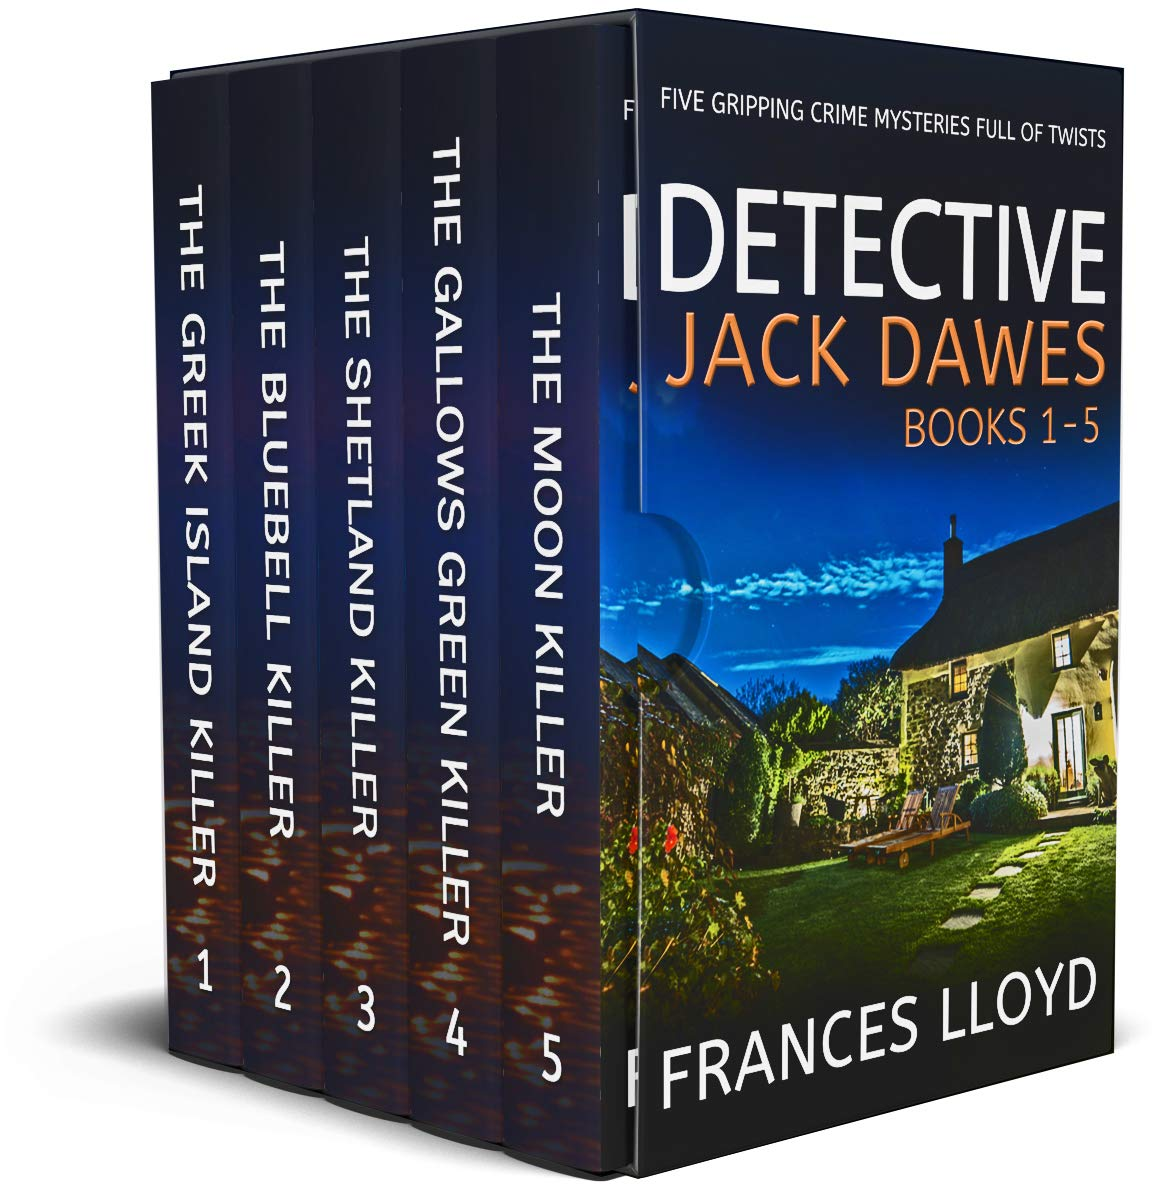 DETECTIVE JACK DAWES BOOKS 1–5 five gripping crime mysteries full of twists